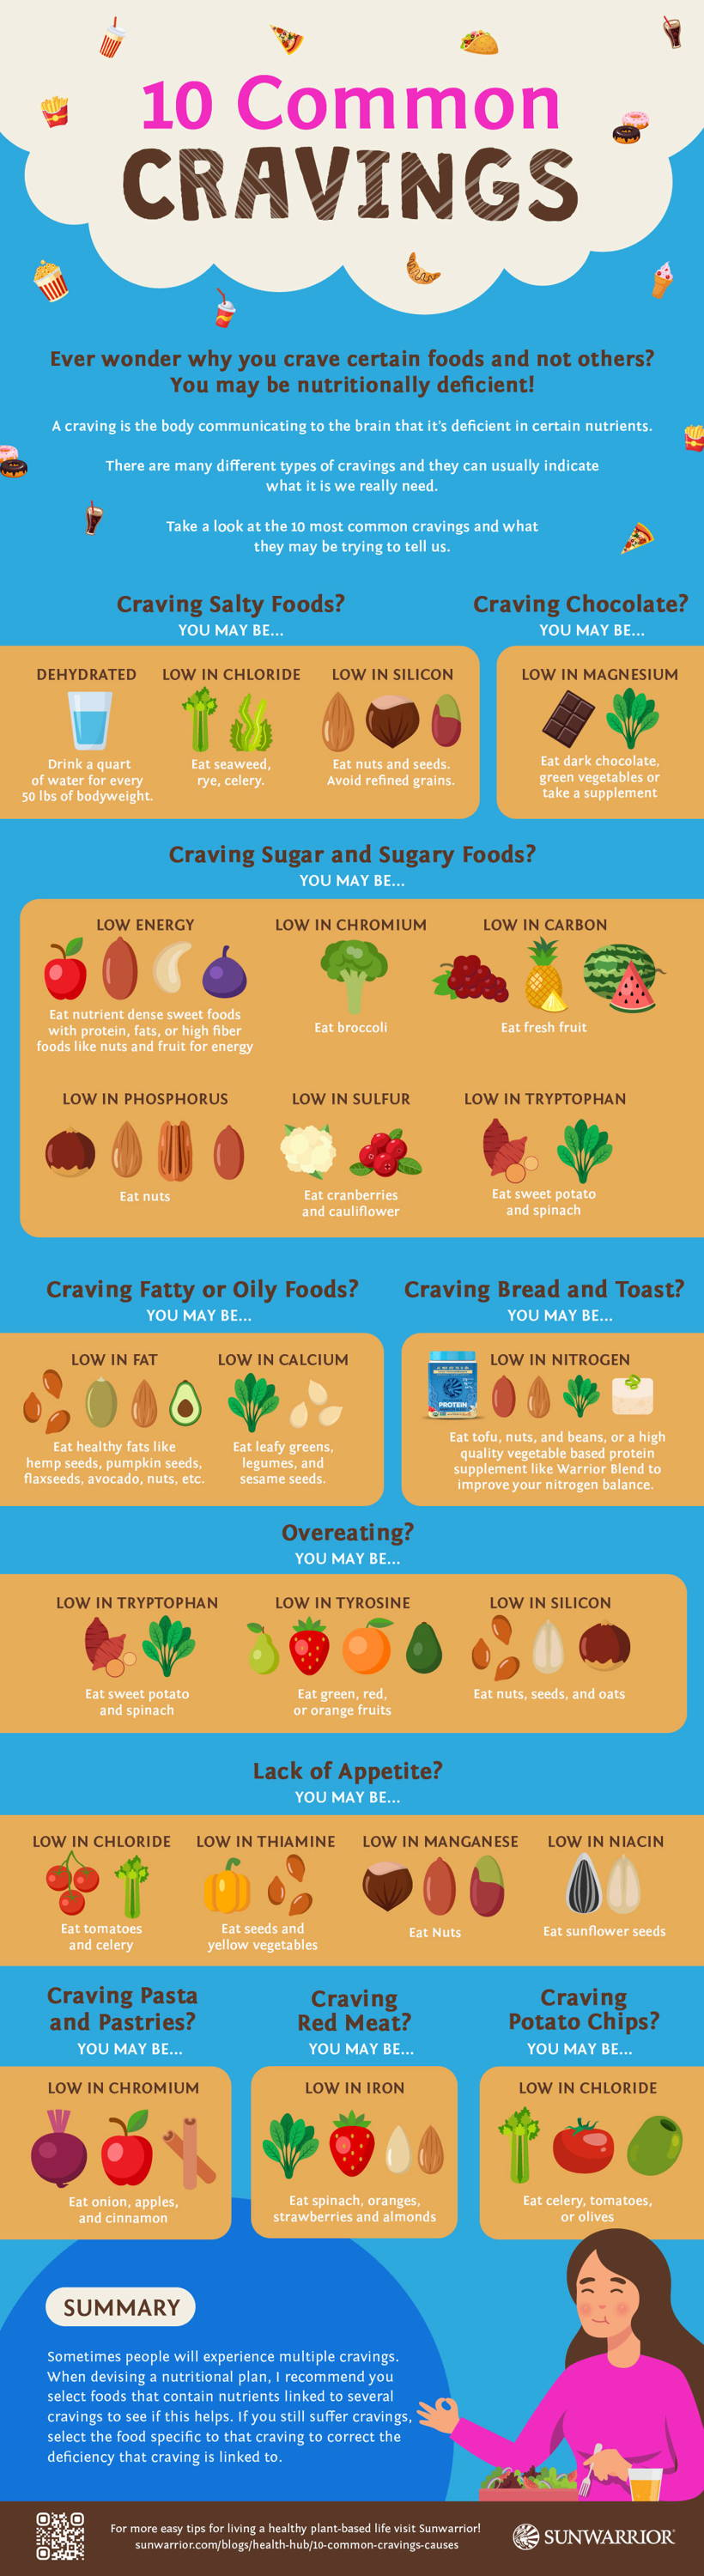 Craving Control: 10 Most Common Cravings, Their Causes, And